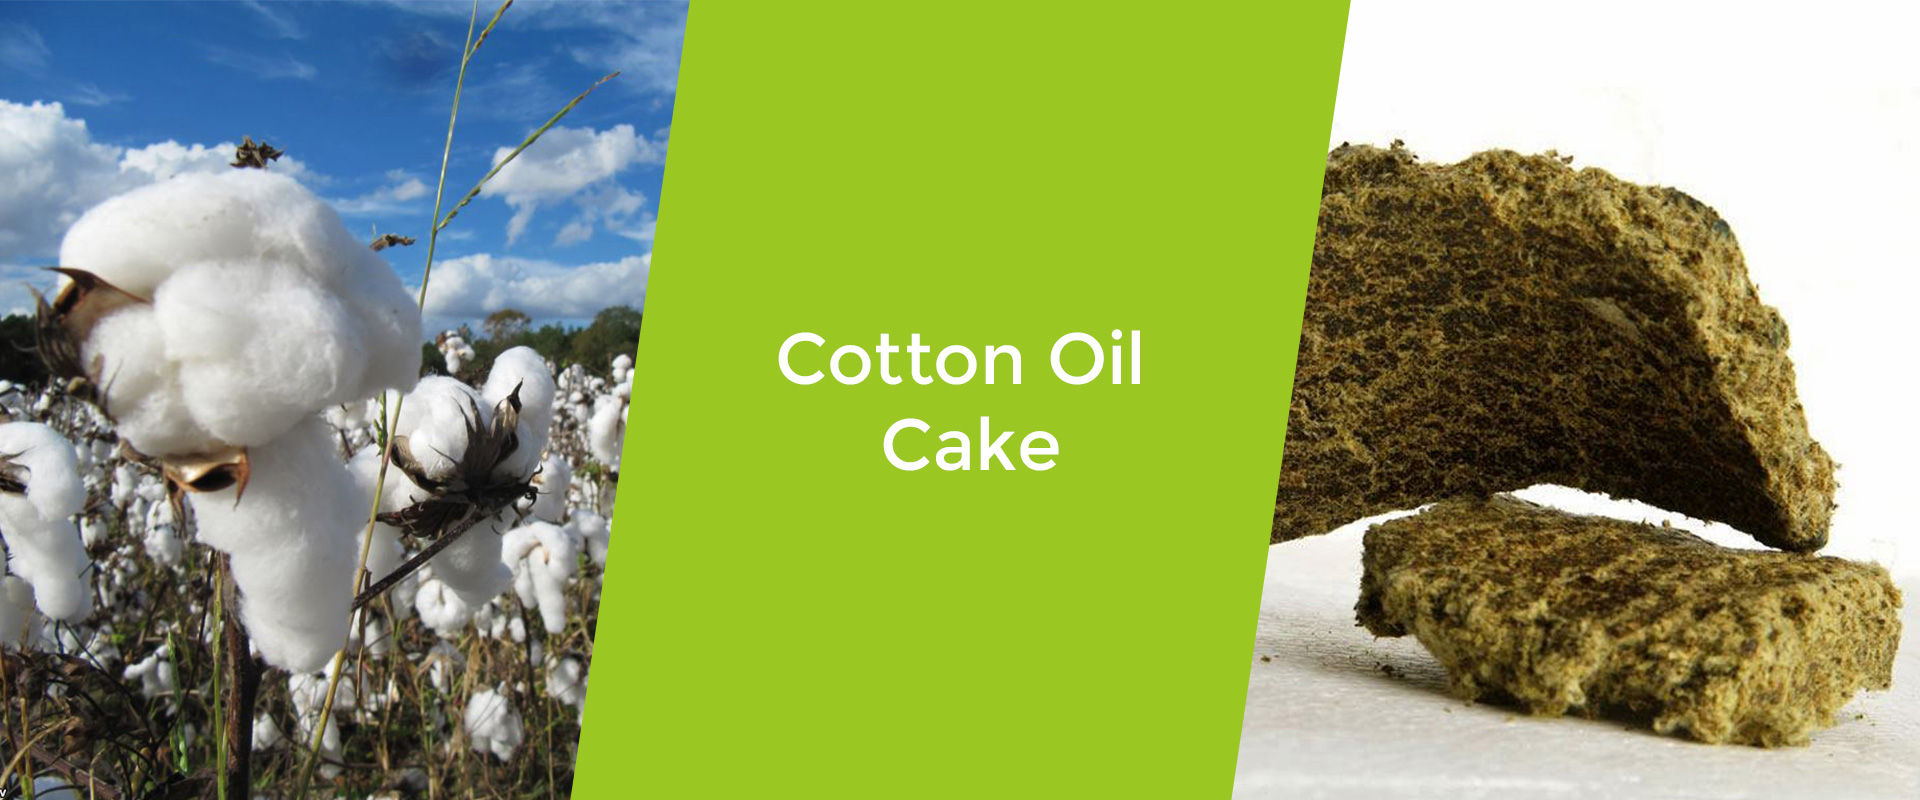 cotton-oil-cake-welcome-broker